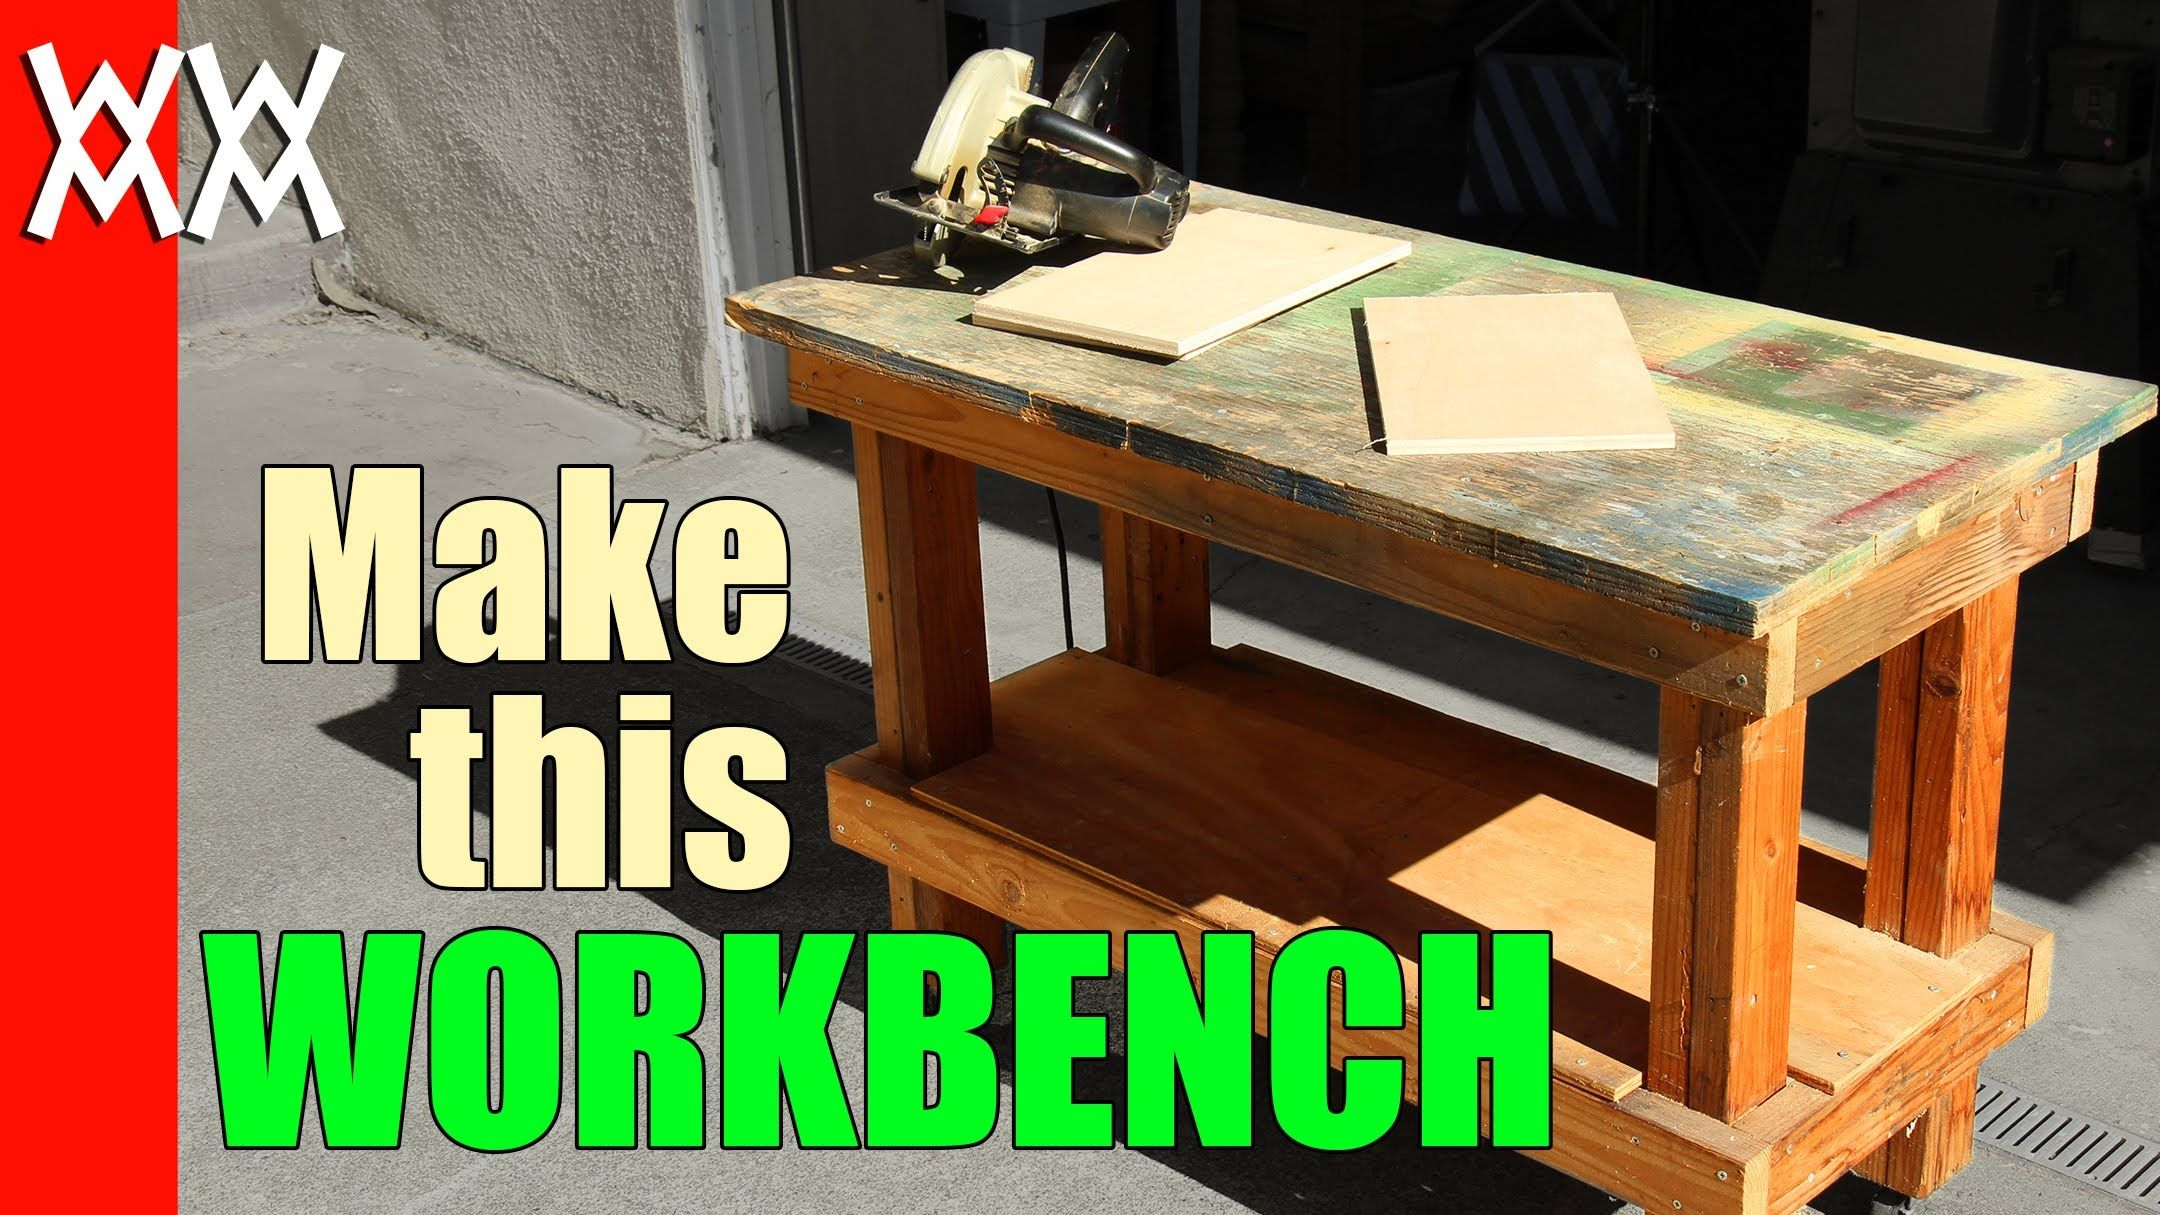 here's a basic workbench made with a few 2x4s and a sheet of